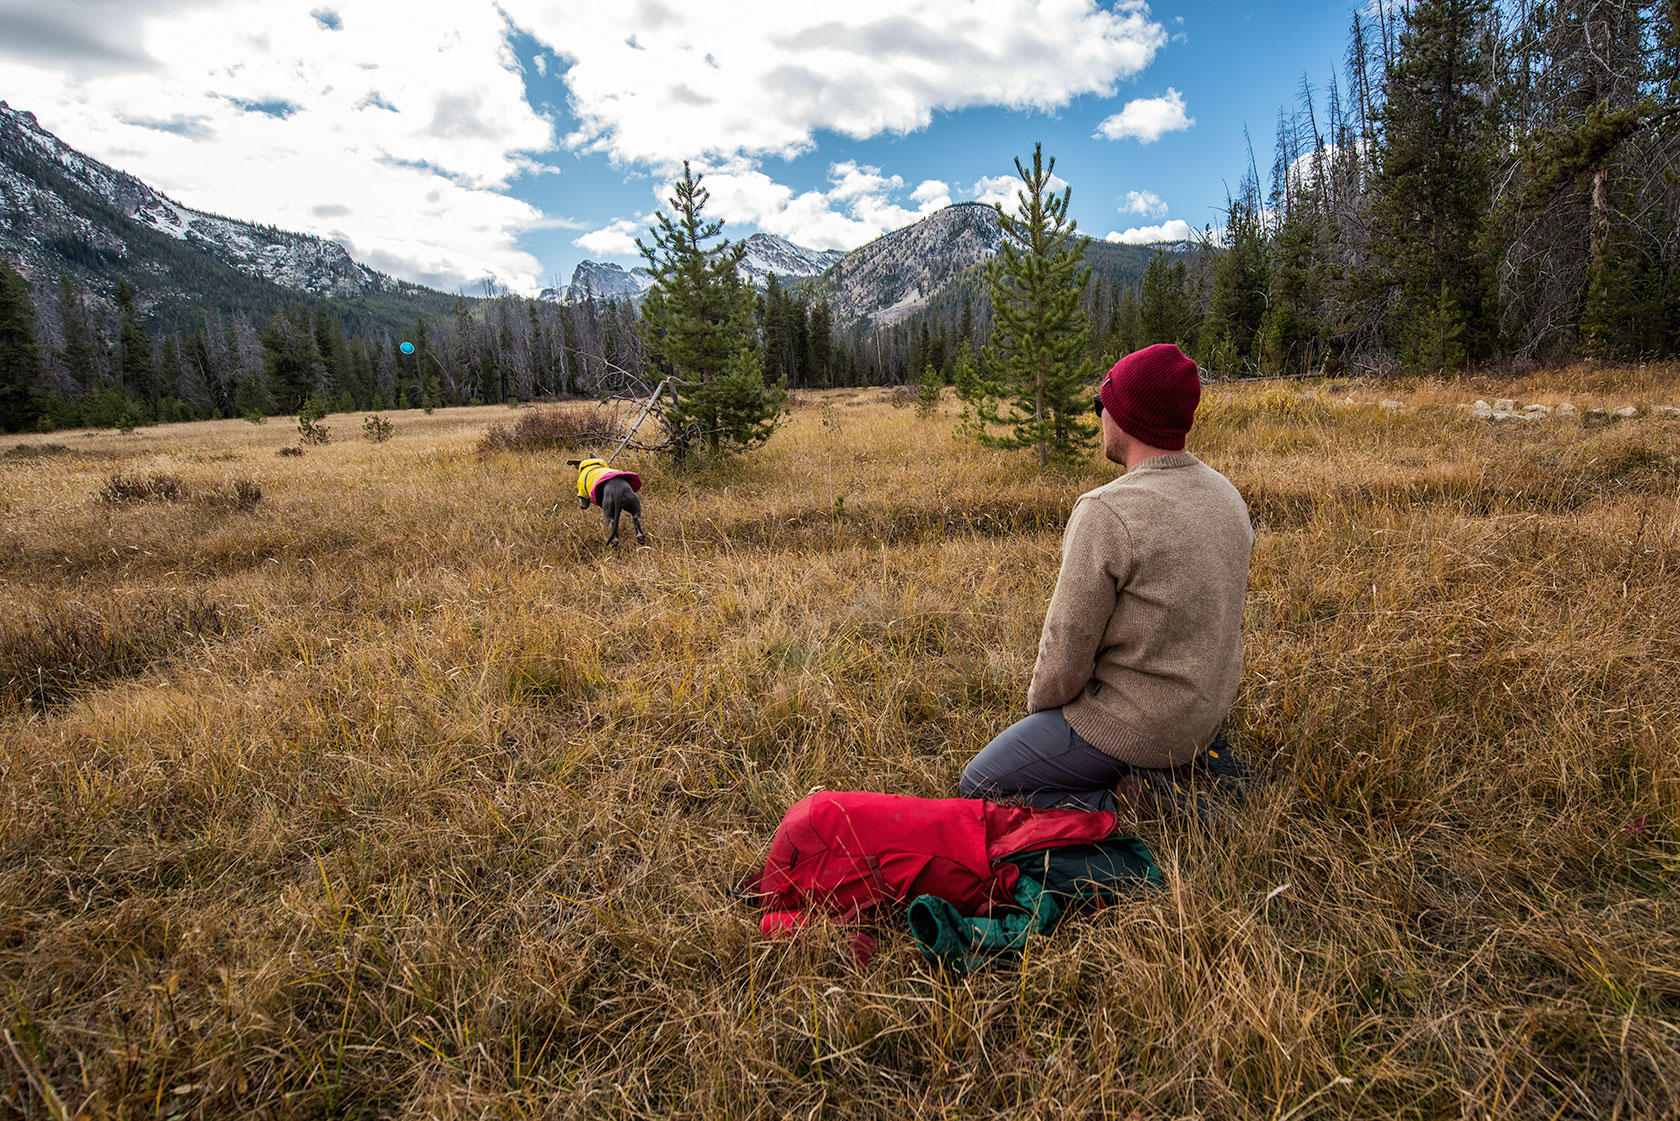 austin-trigg-patagonia-sawtooth-hiking-advenure-wilderness-forest-idaho-outside-lifestyle-day-fall-weather-mountains-fetch-dog-meadow.jpg